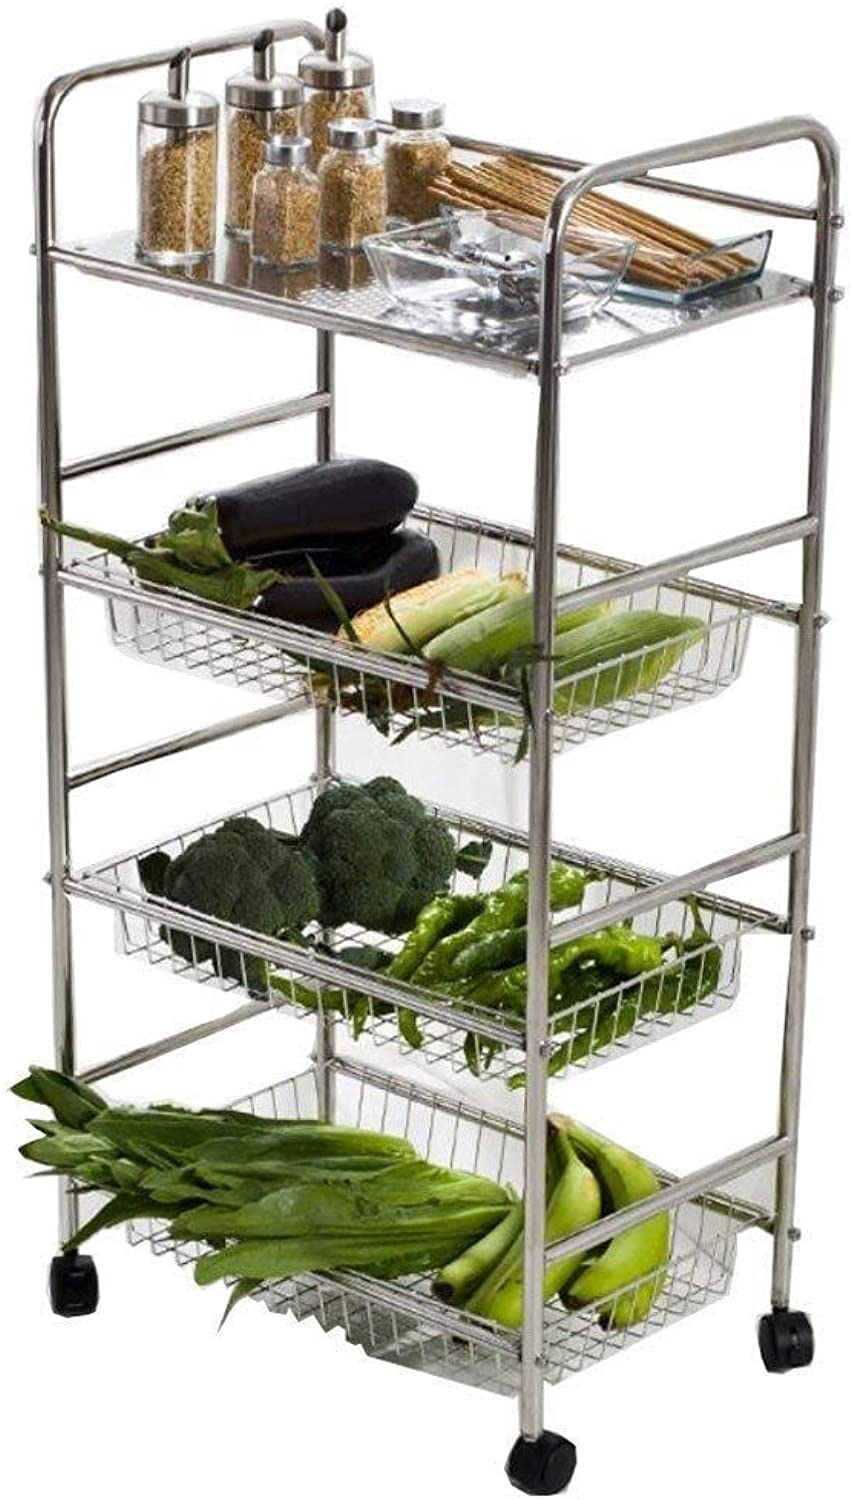 Storage Rack- 304 Stainless Steel Kitchen Rack Floor Multi-Layer Removable Household Storage Basket Put Fruit and Vegetable Basket Shelf ZXMDMZ